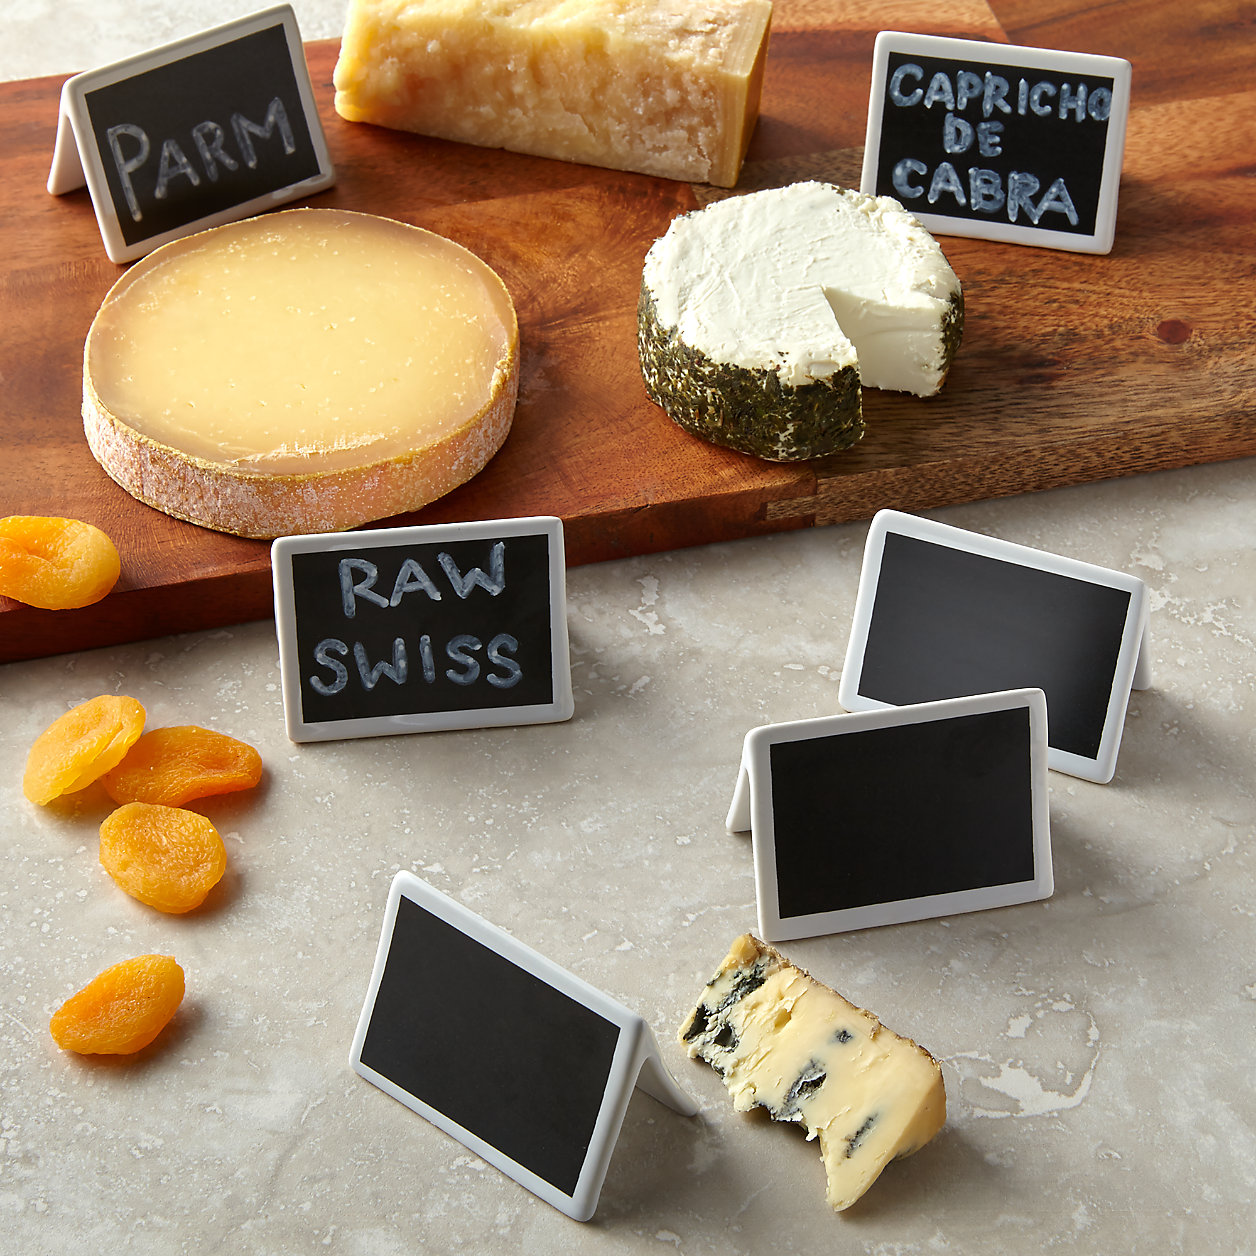 Crate and Barrel Mini Chalkboard Stands with pieces of cheese